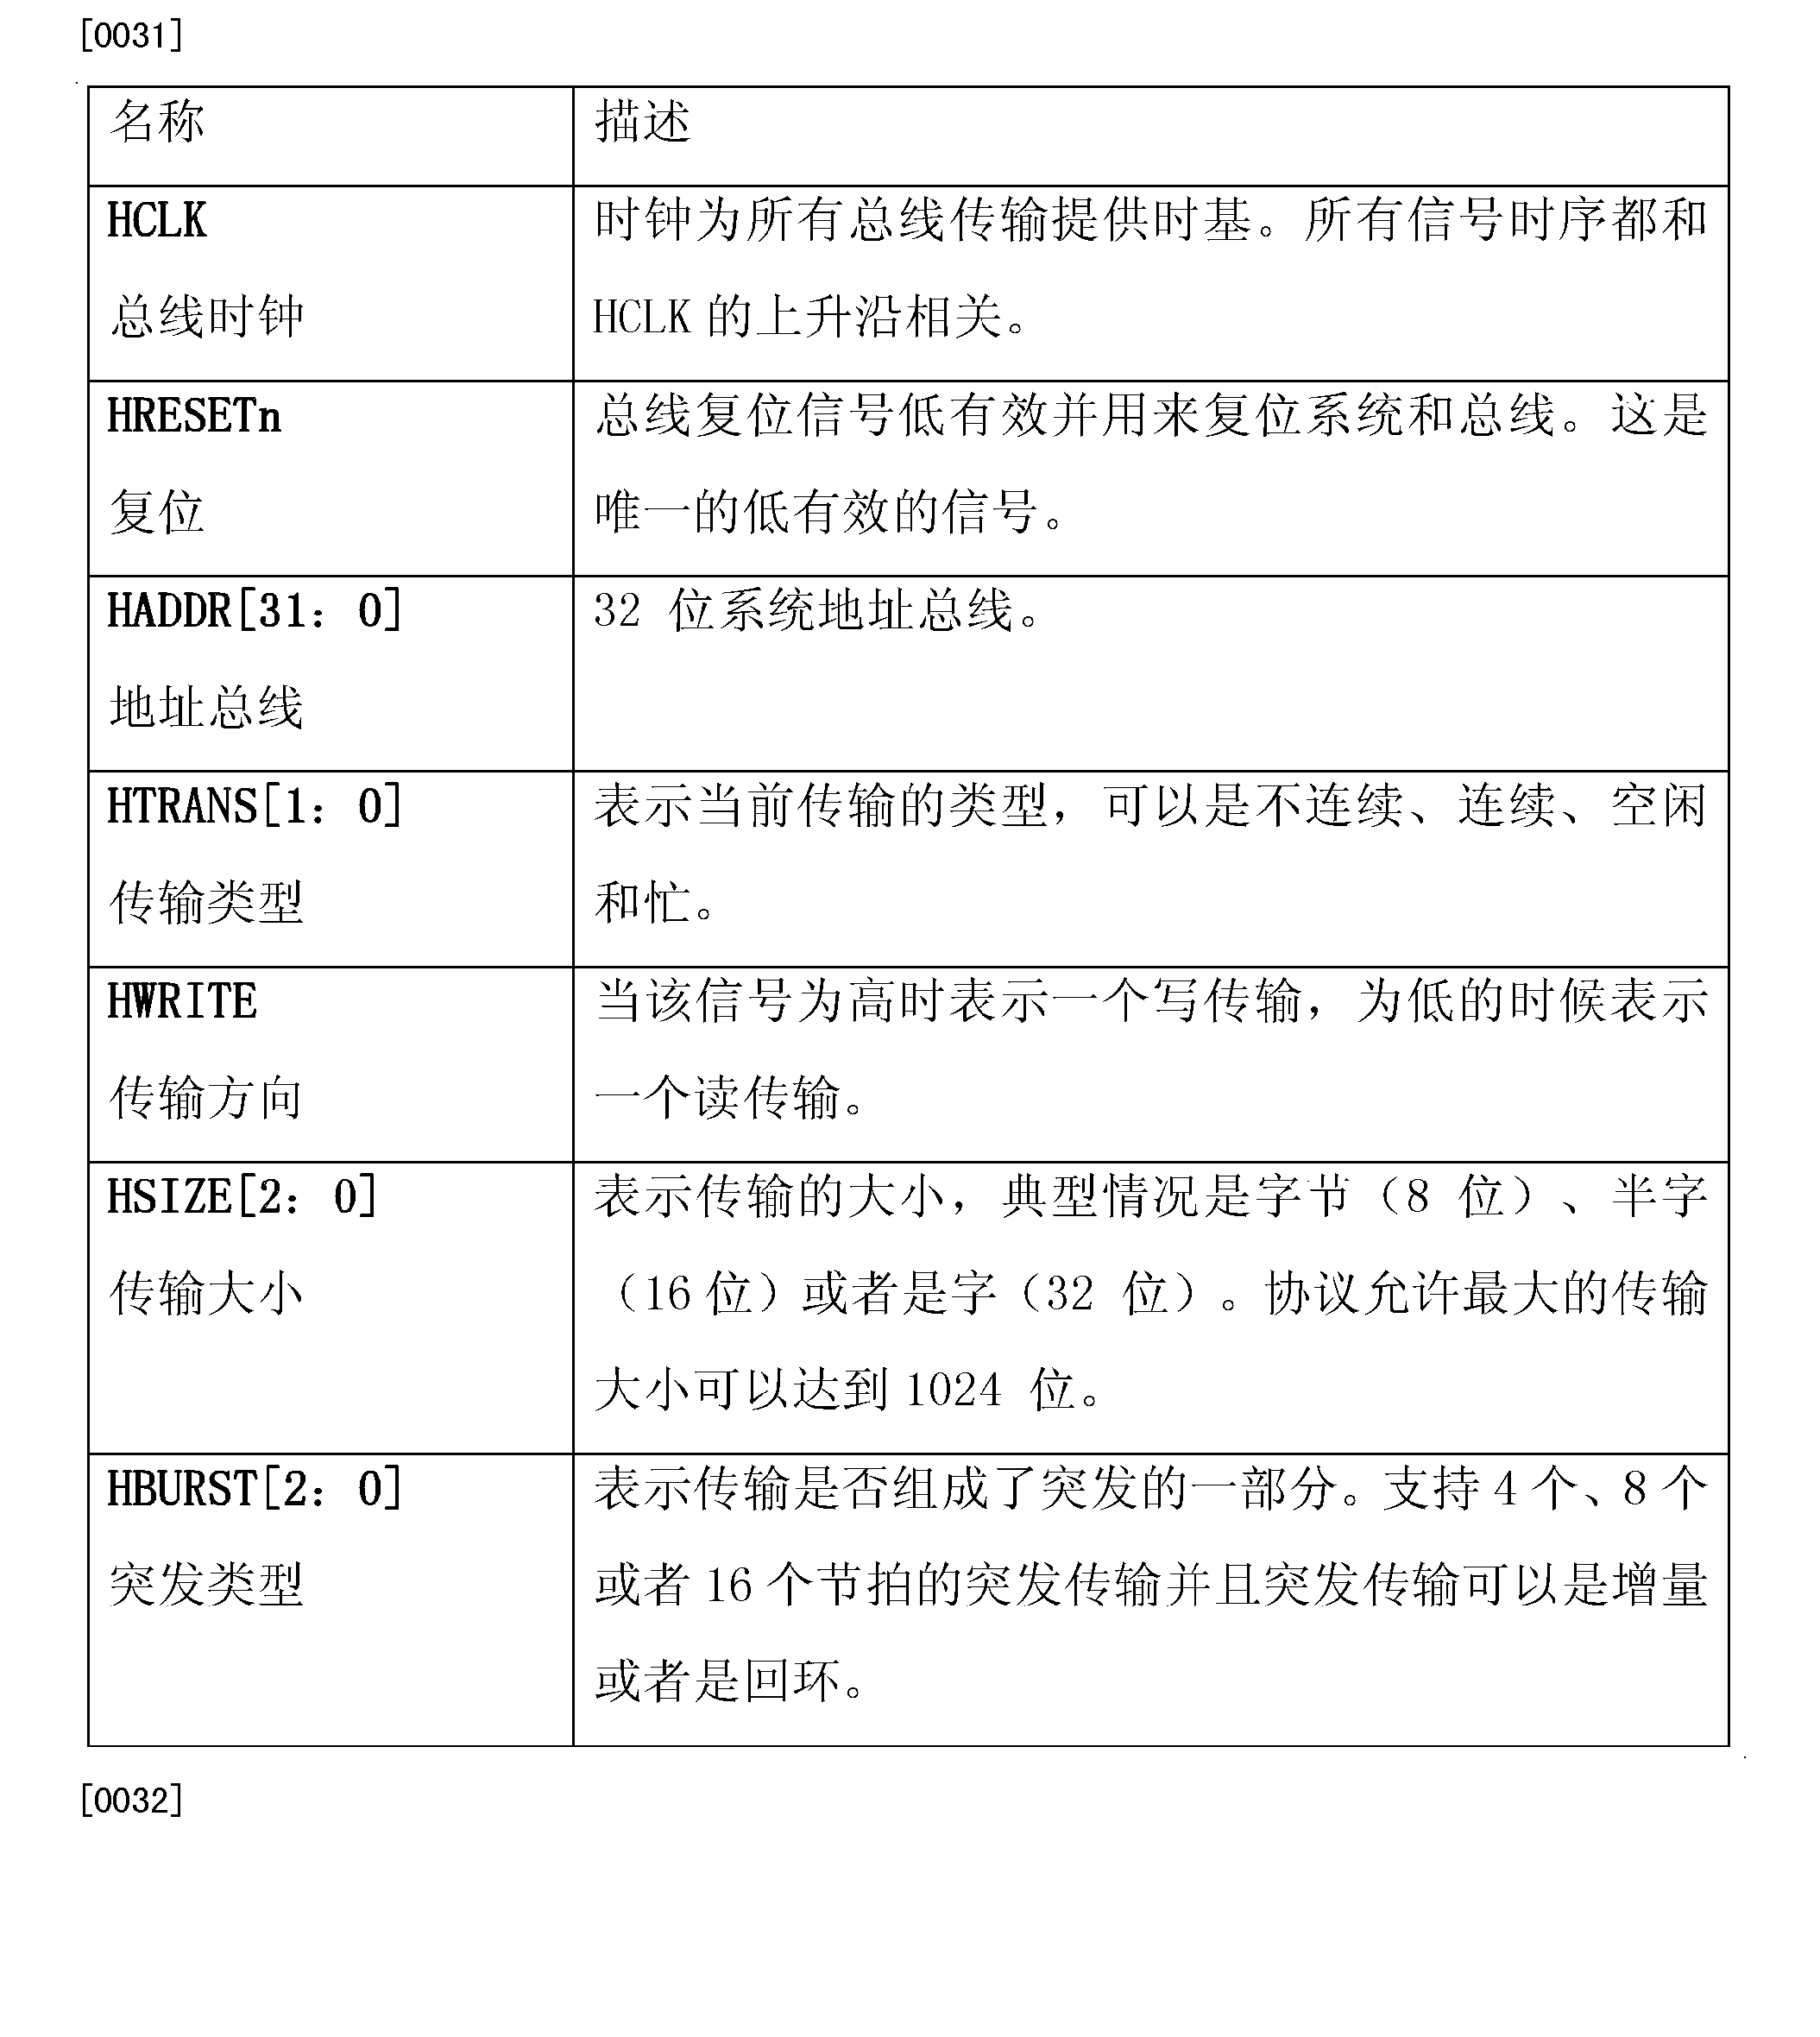 CN102495782B - Synergy bus validation method and system based on